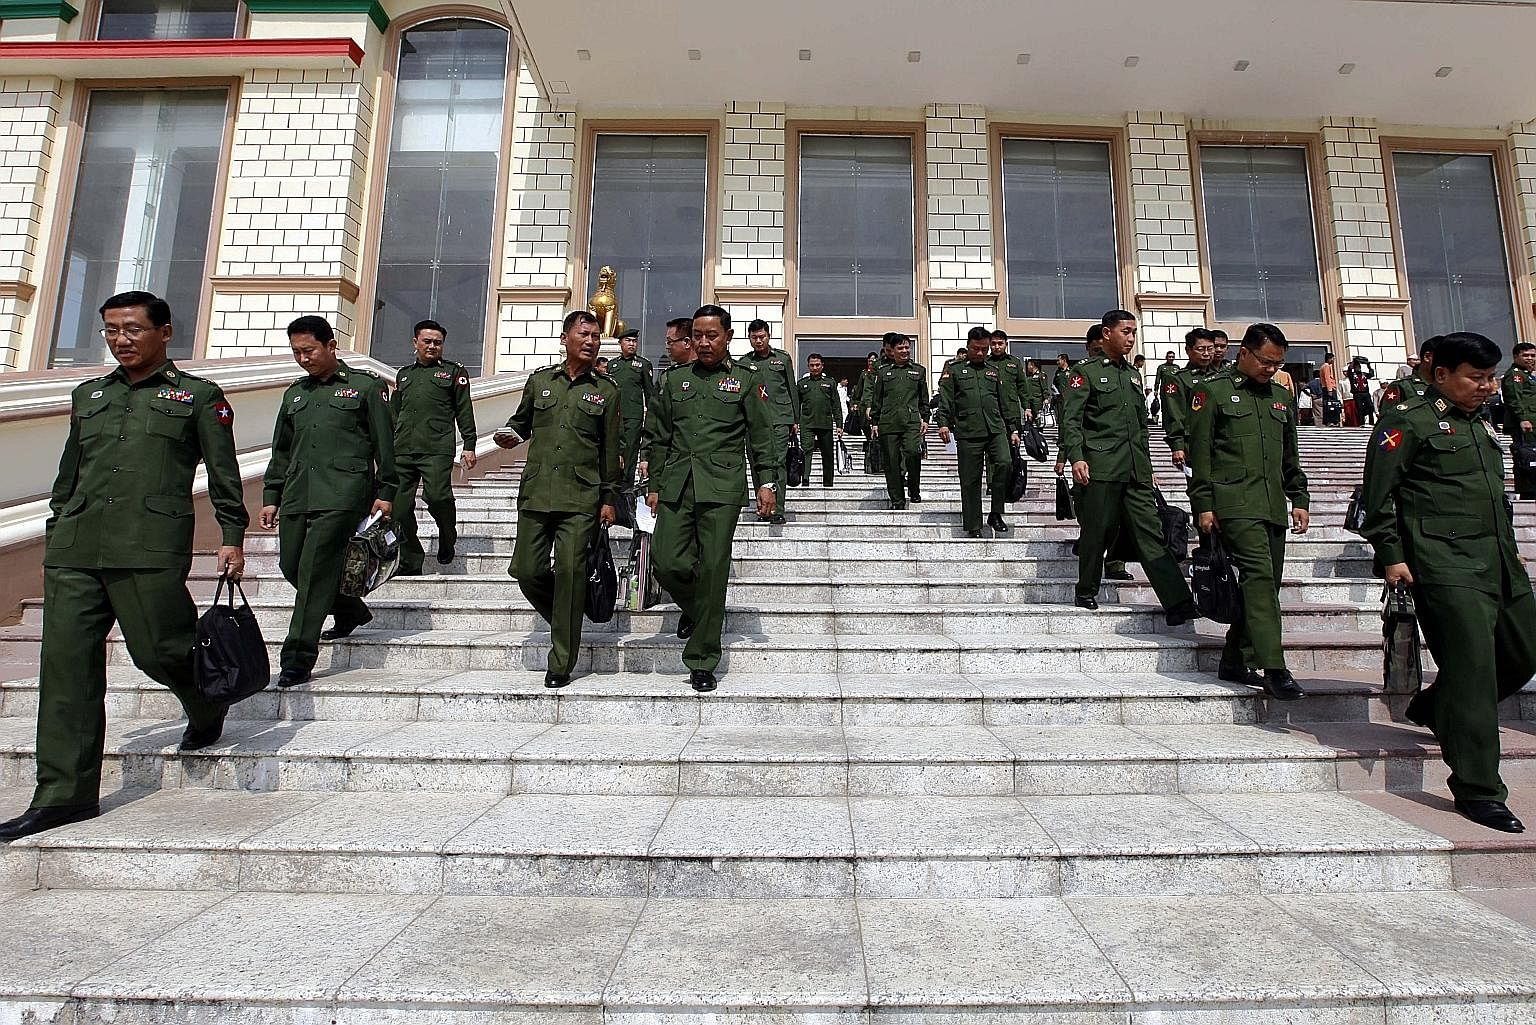 Military representatives leaving after a regular session of Parliament in Naypyitaw on March 1. Recent developments have suggested that the present military leadership is intent on sustaining its influence on the country's politics at least for the n